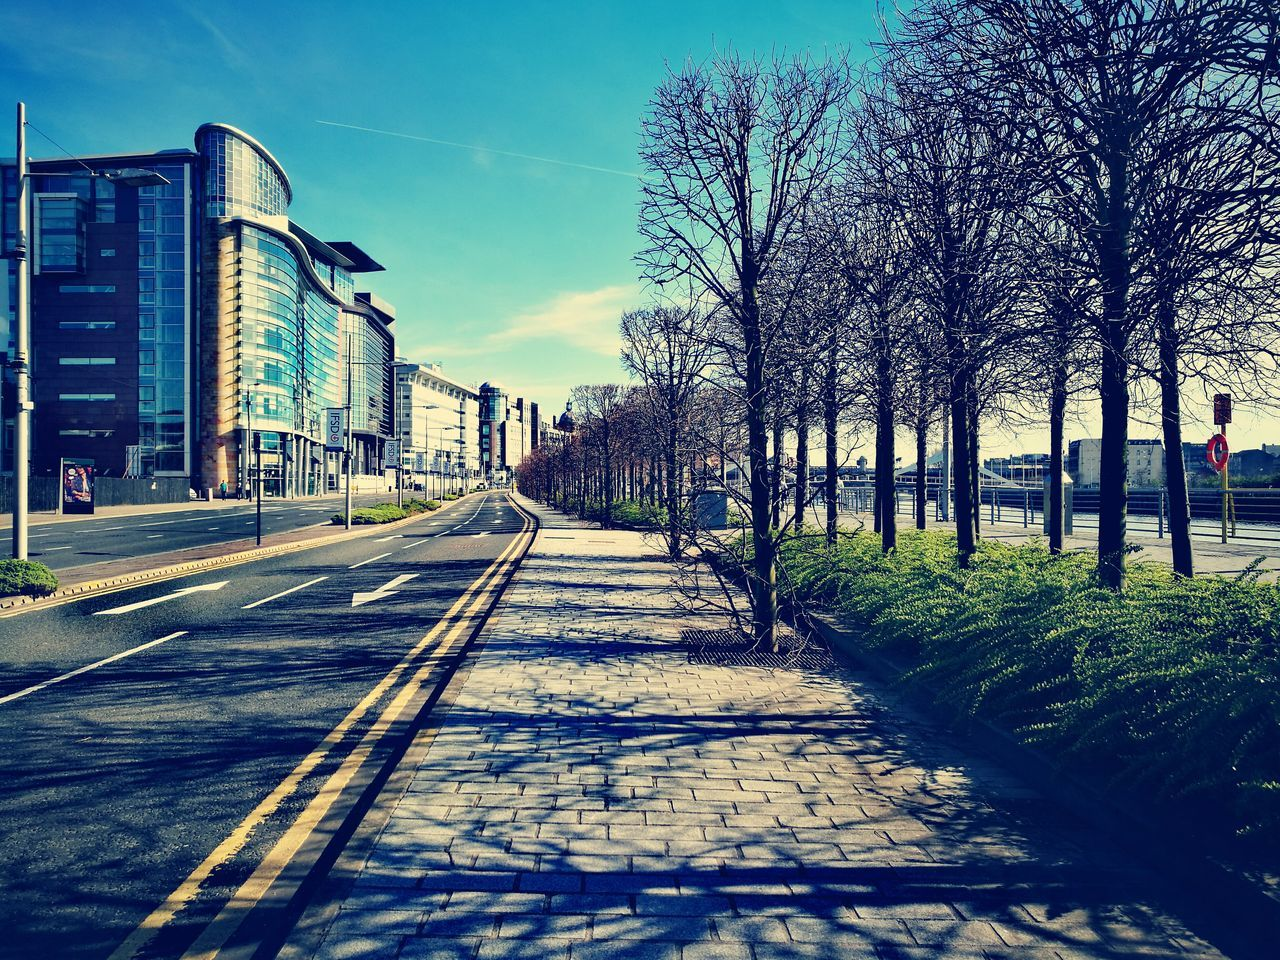 architecture, building exterior, built structure, outdoors, tree, city, the way forward, road, sky, day, no people, bare tree, nature